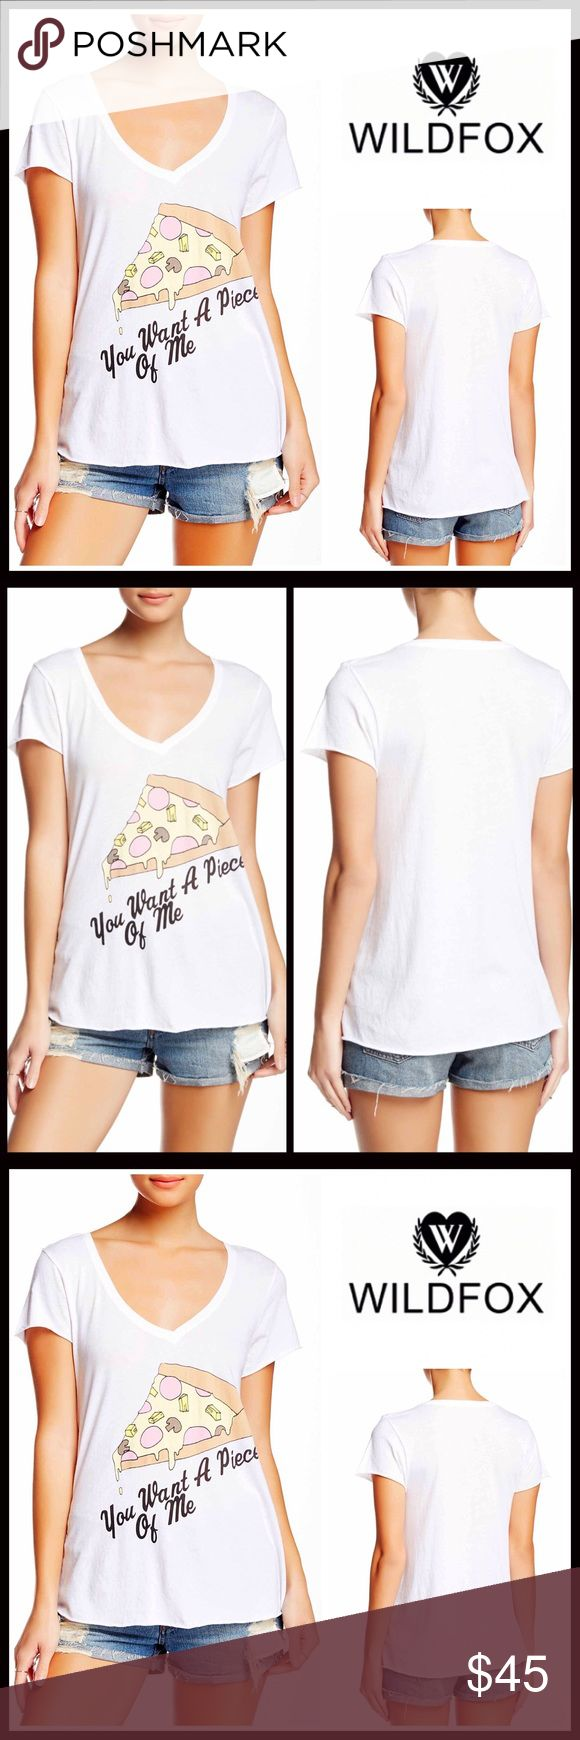 "⭐️⭐️ WILDFOX V-Neck Tee You Want A Piece of Me 💟NEW WITH TAGS💟 RETAIL PRICE: $65  WILDFOX V-Neck Tee You Want A Piece of Me  * Relaxed Silhouette  * V-neck & short sleeves  * Incredibly soft & lightweight; Front pizza graphic print    * Made in the USA  * About 25"" long   Fabric- 50% Cotton, 50% polyester  Item# Color- Clean white  🚫No Trades🚫 ✅Offers Considered*/Bundle Discounts✅ *Please use the blue 'offer' button to submit an offer. Wildfox Tops Tees - Short Sleeve"